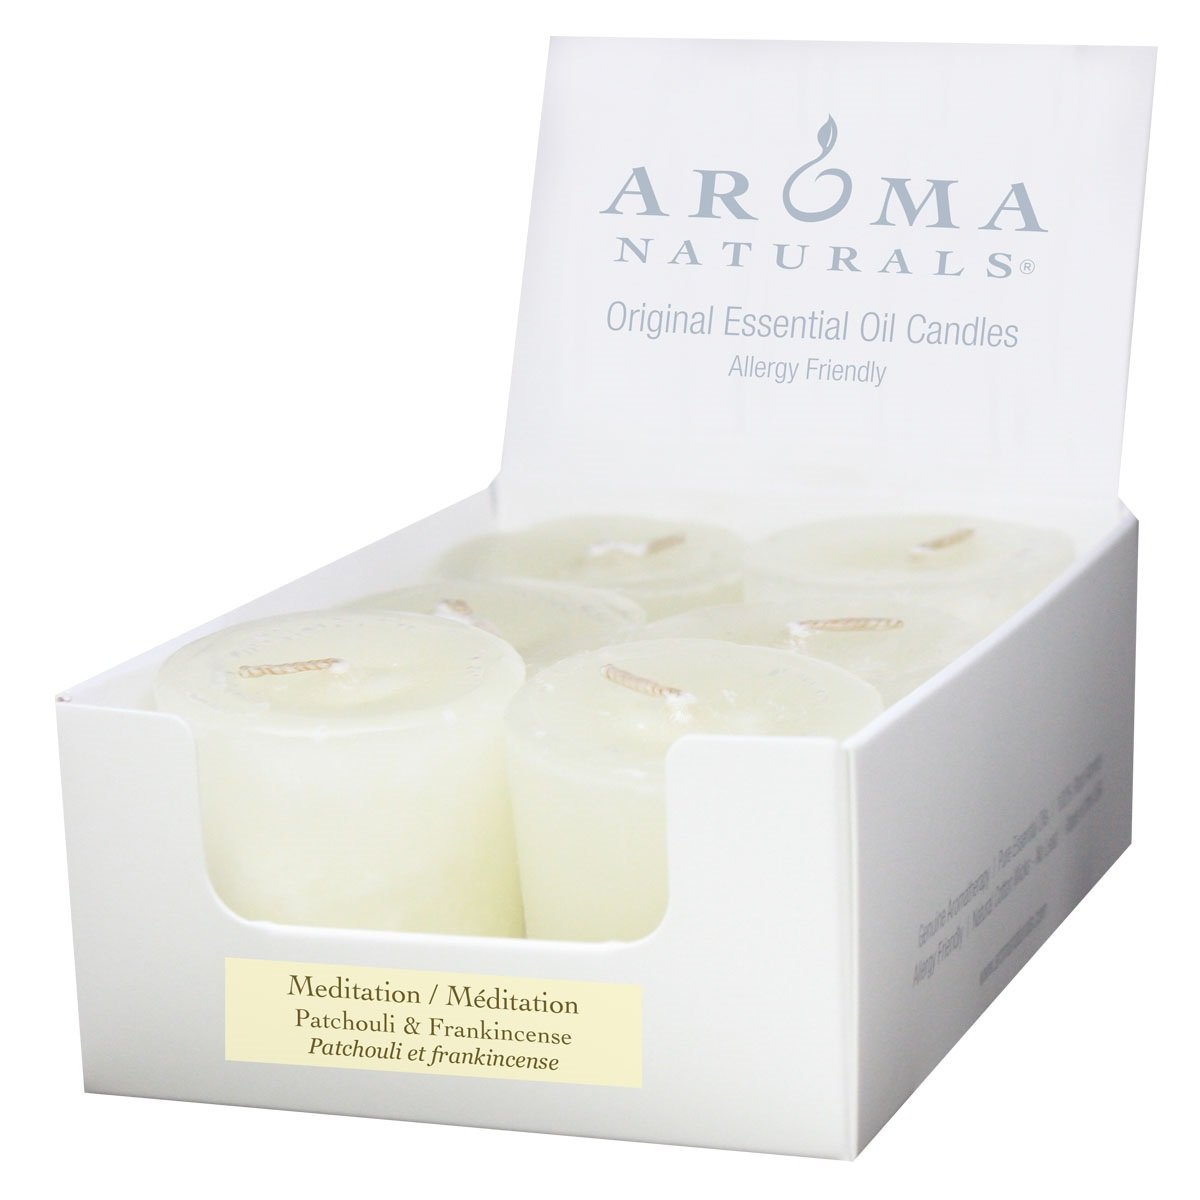 Aroma Naturals Votive Candles with White, Patchouli and Frankincense, Meditation, 6 Count